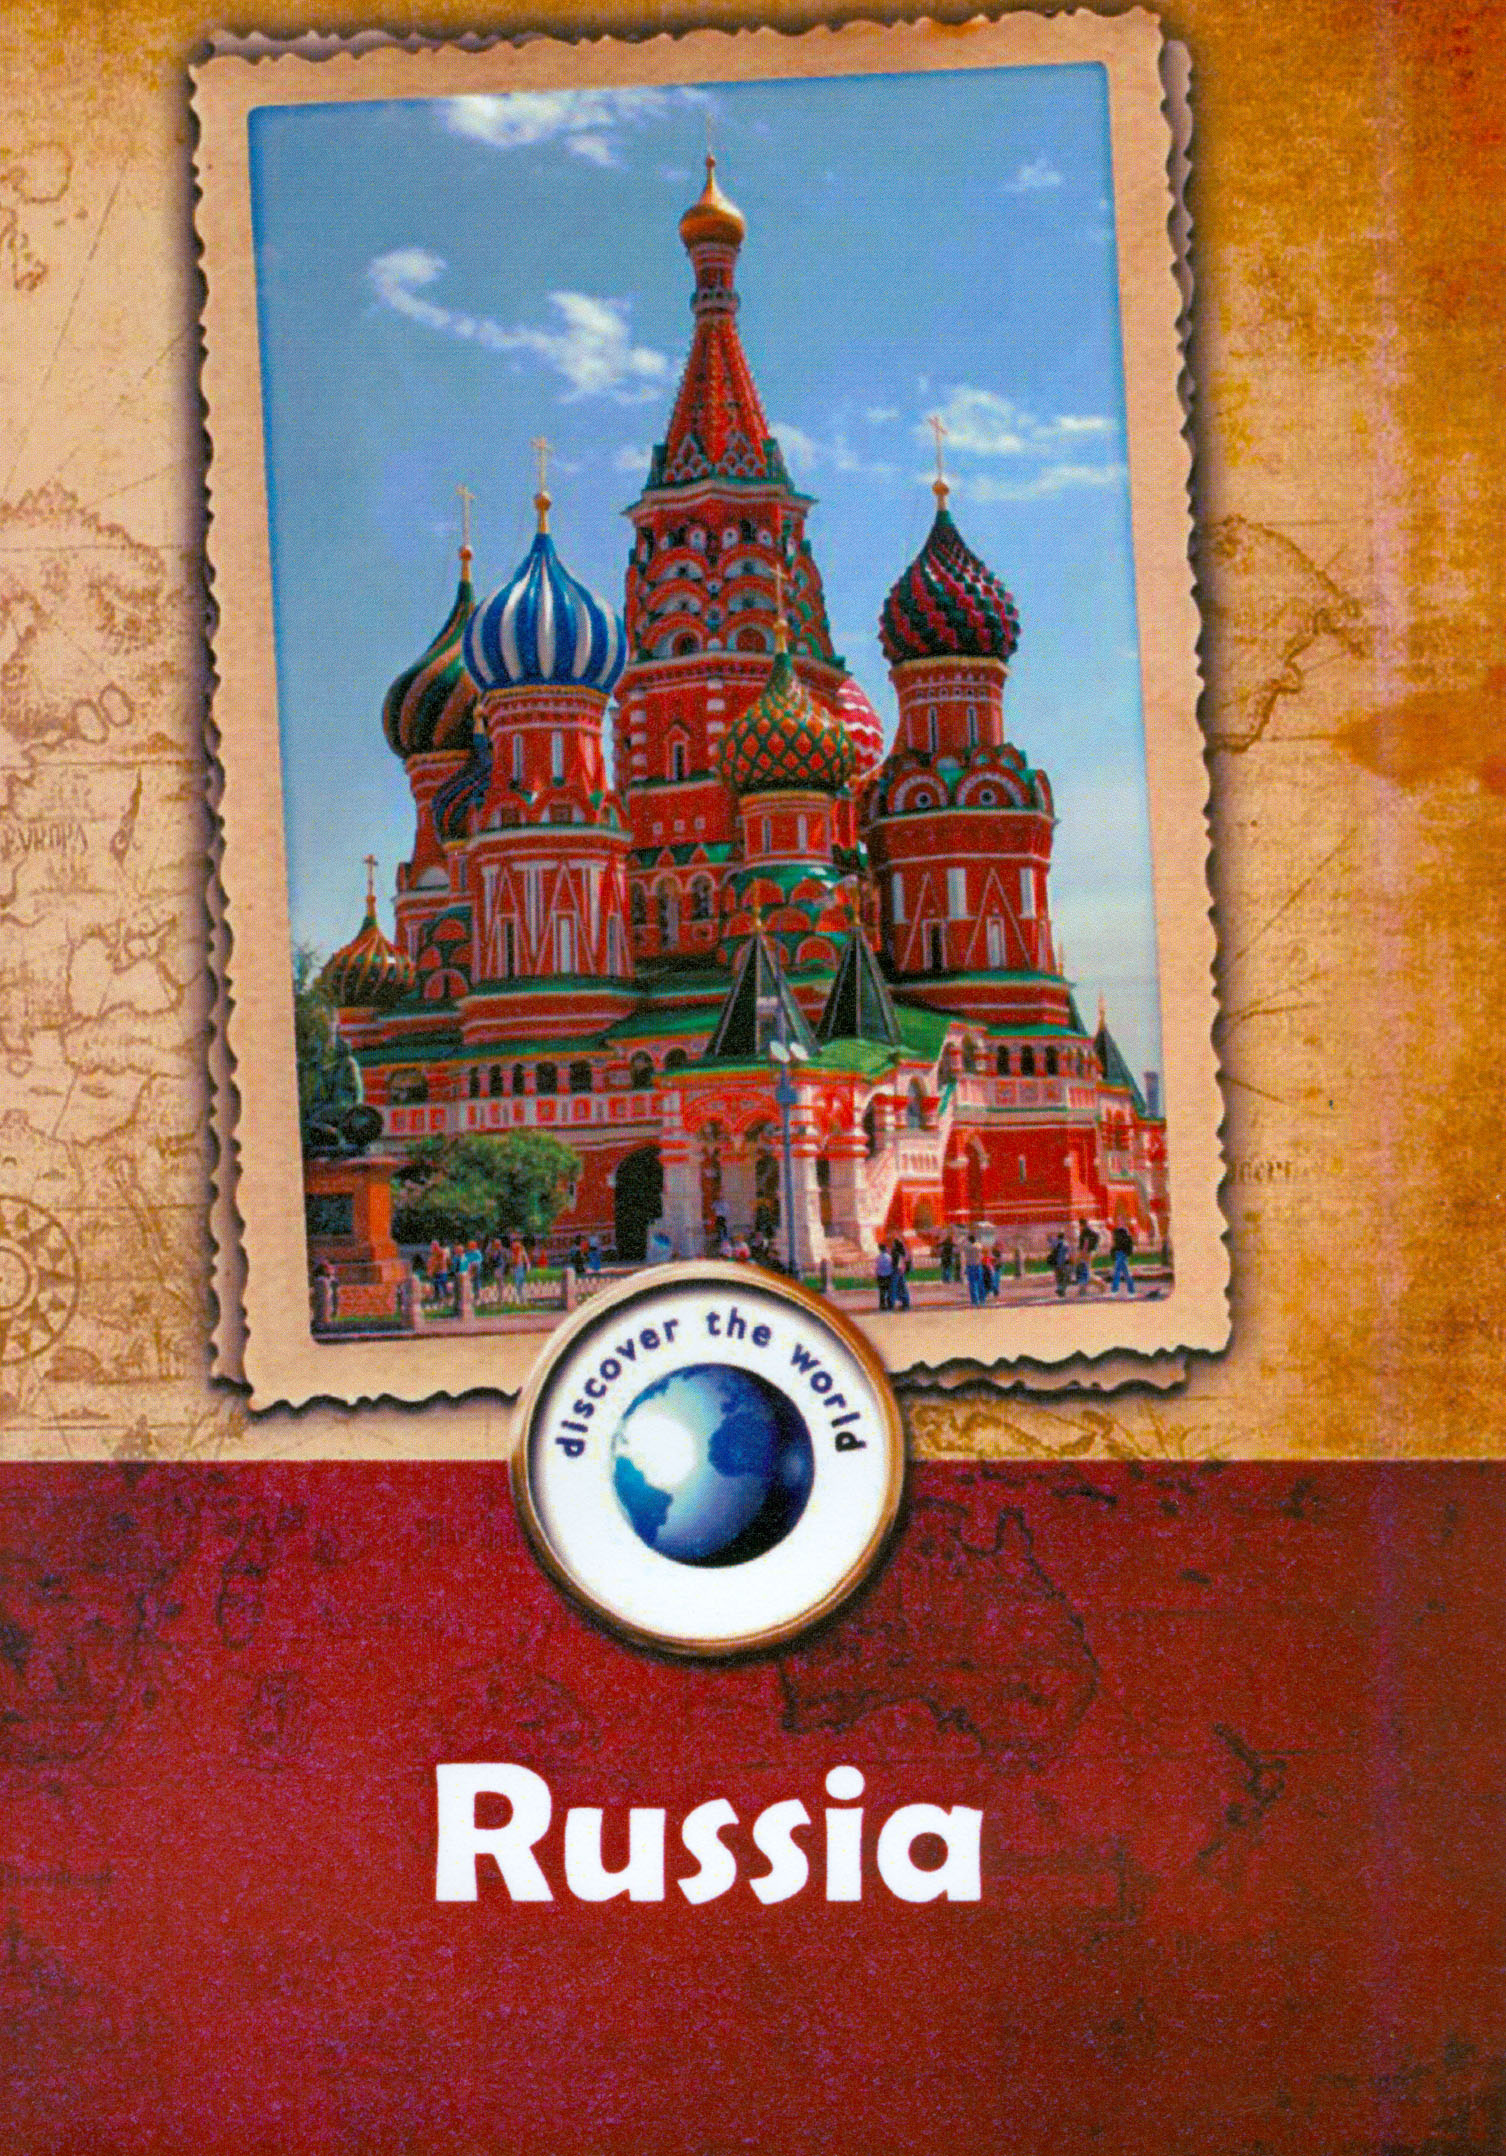 Discover the World: Russia